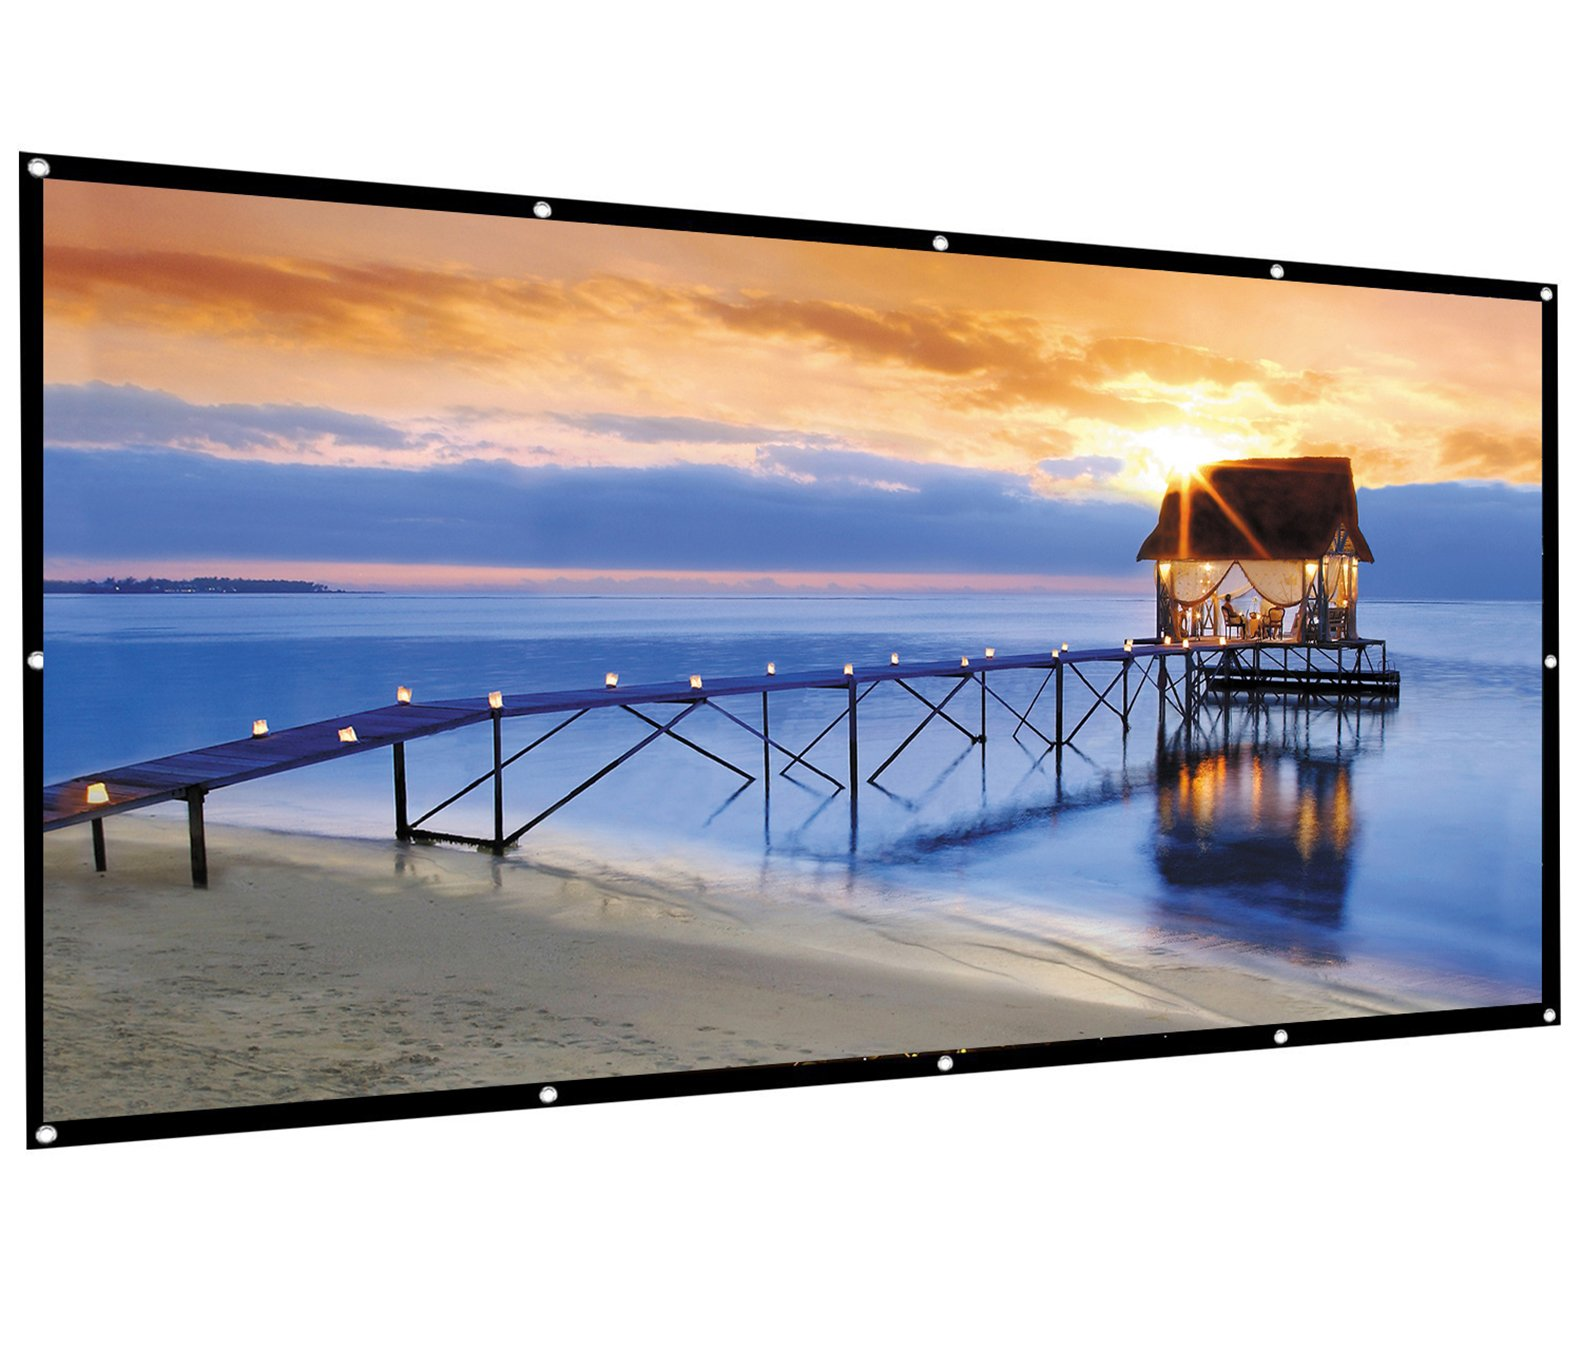 Famirosa Indoor Outdoor Portable HD Home Theater Projector Movie Screen,100 inch 120 inch 16:9 Portable Folding Projection Screen High Brightness, Suitable for HDTV/Sports/Movies/Presentations